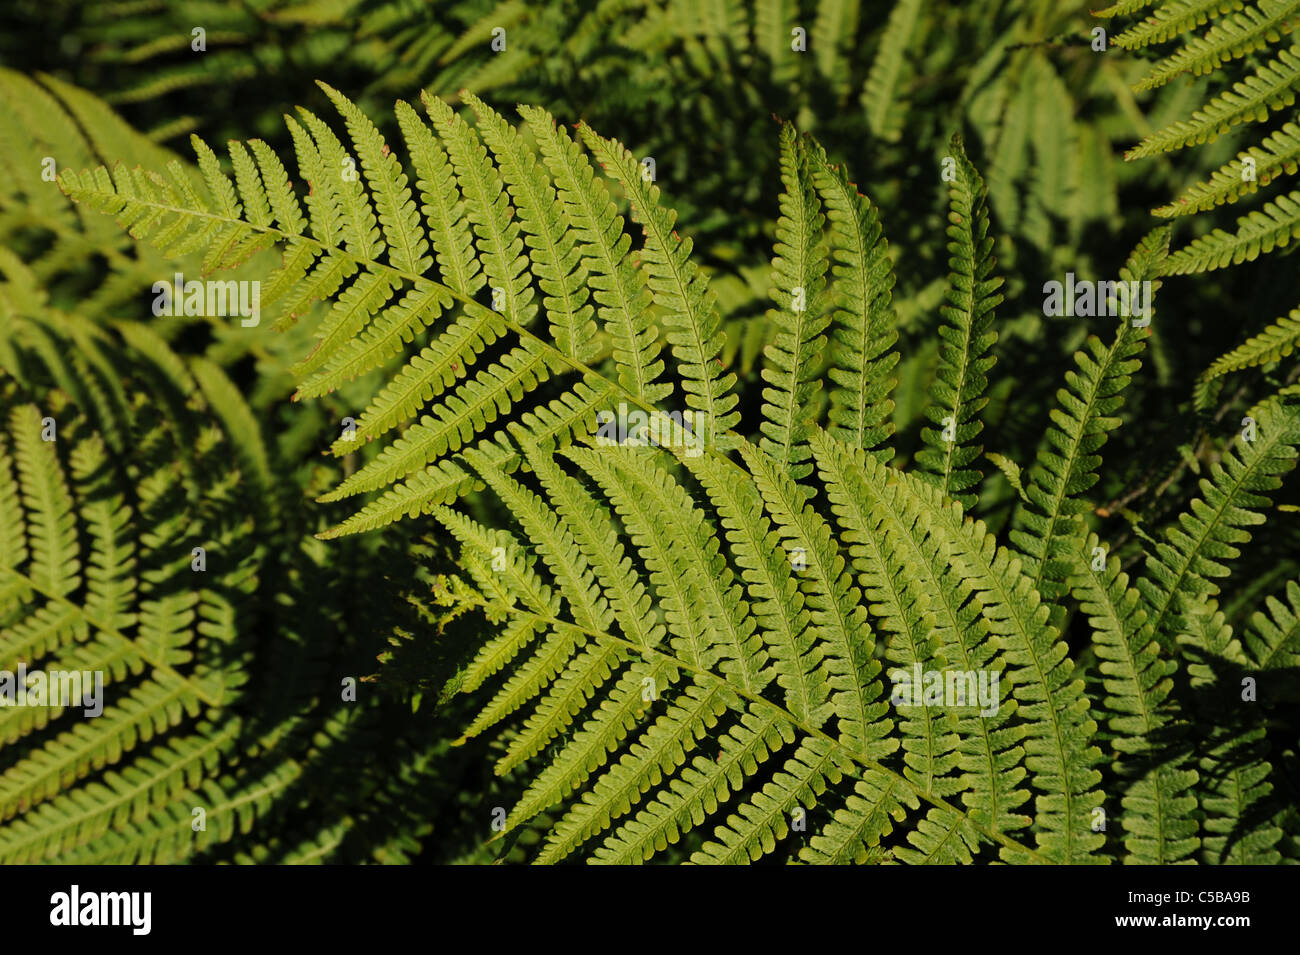 Bracken or fern shot using natural light - Stock Image